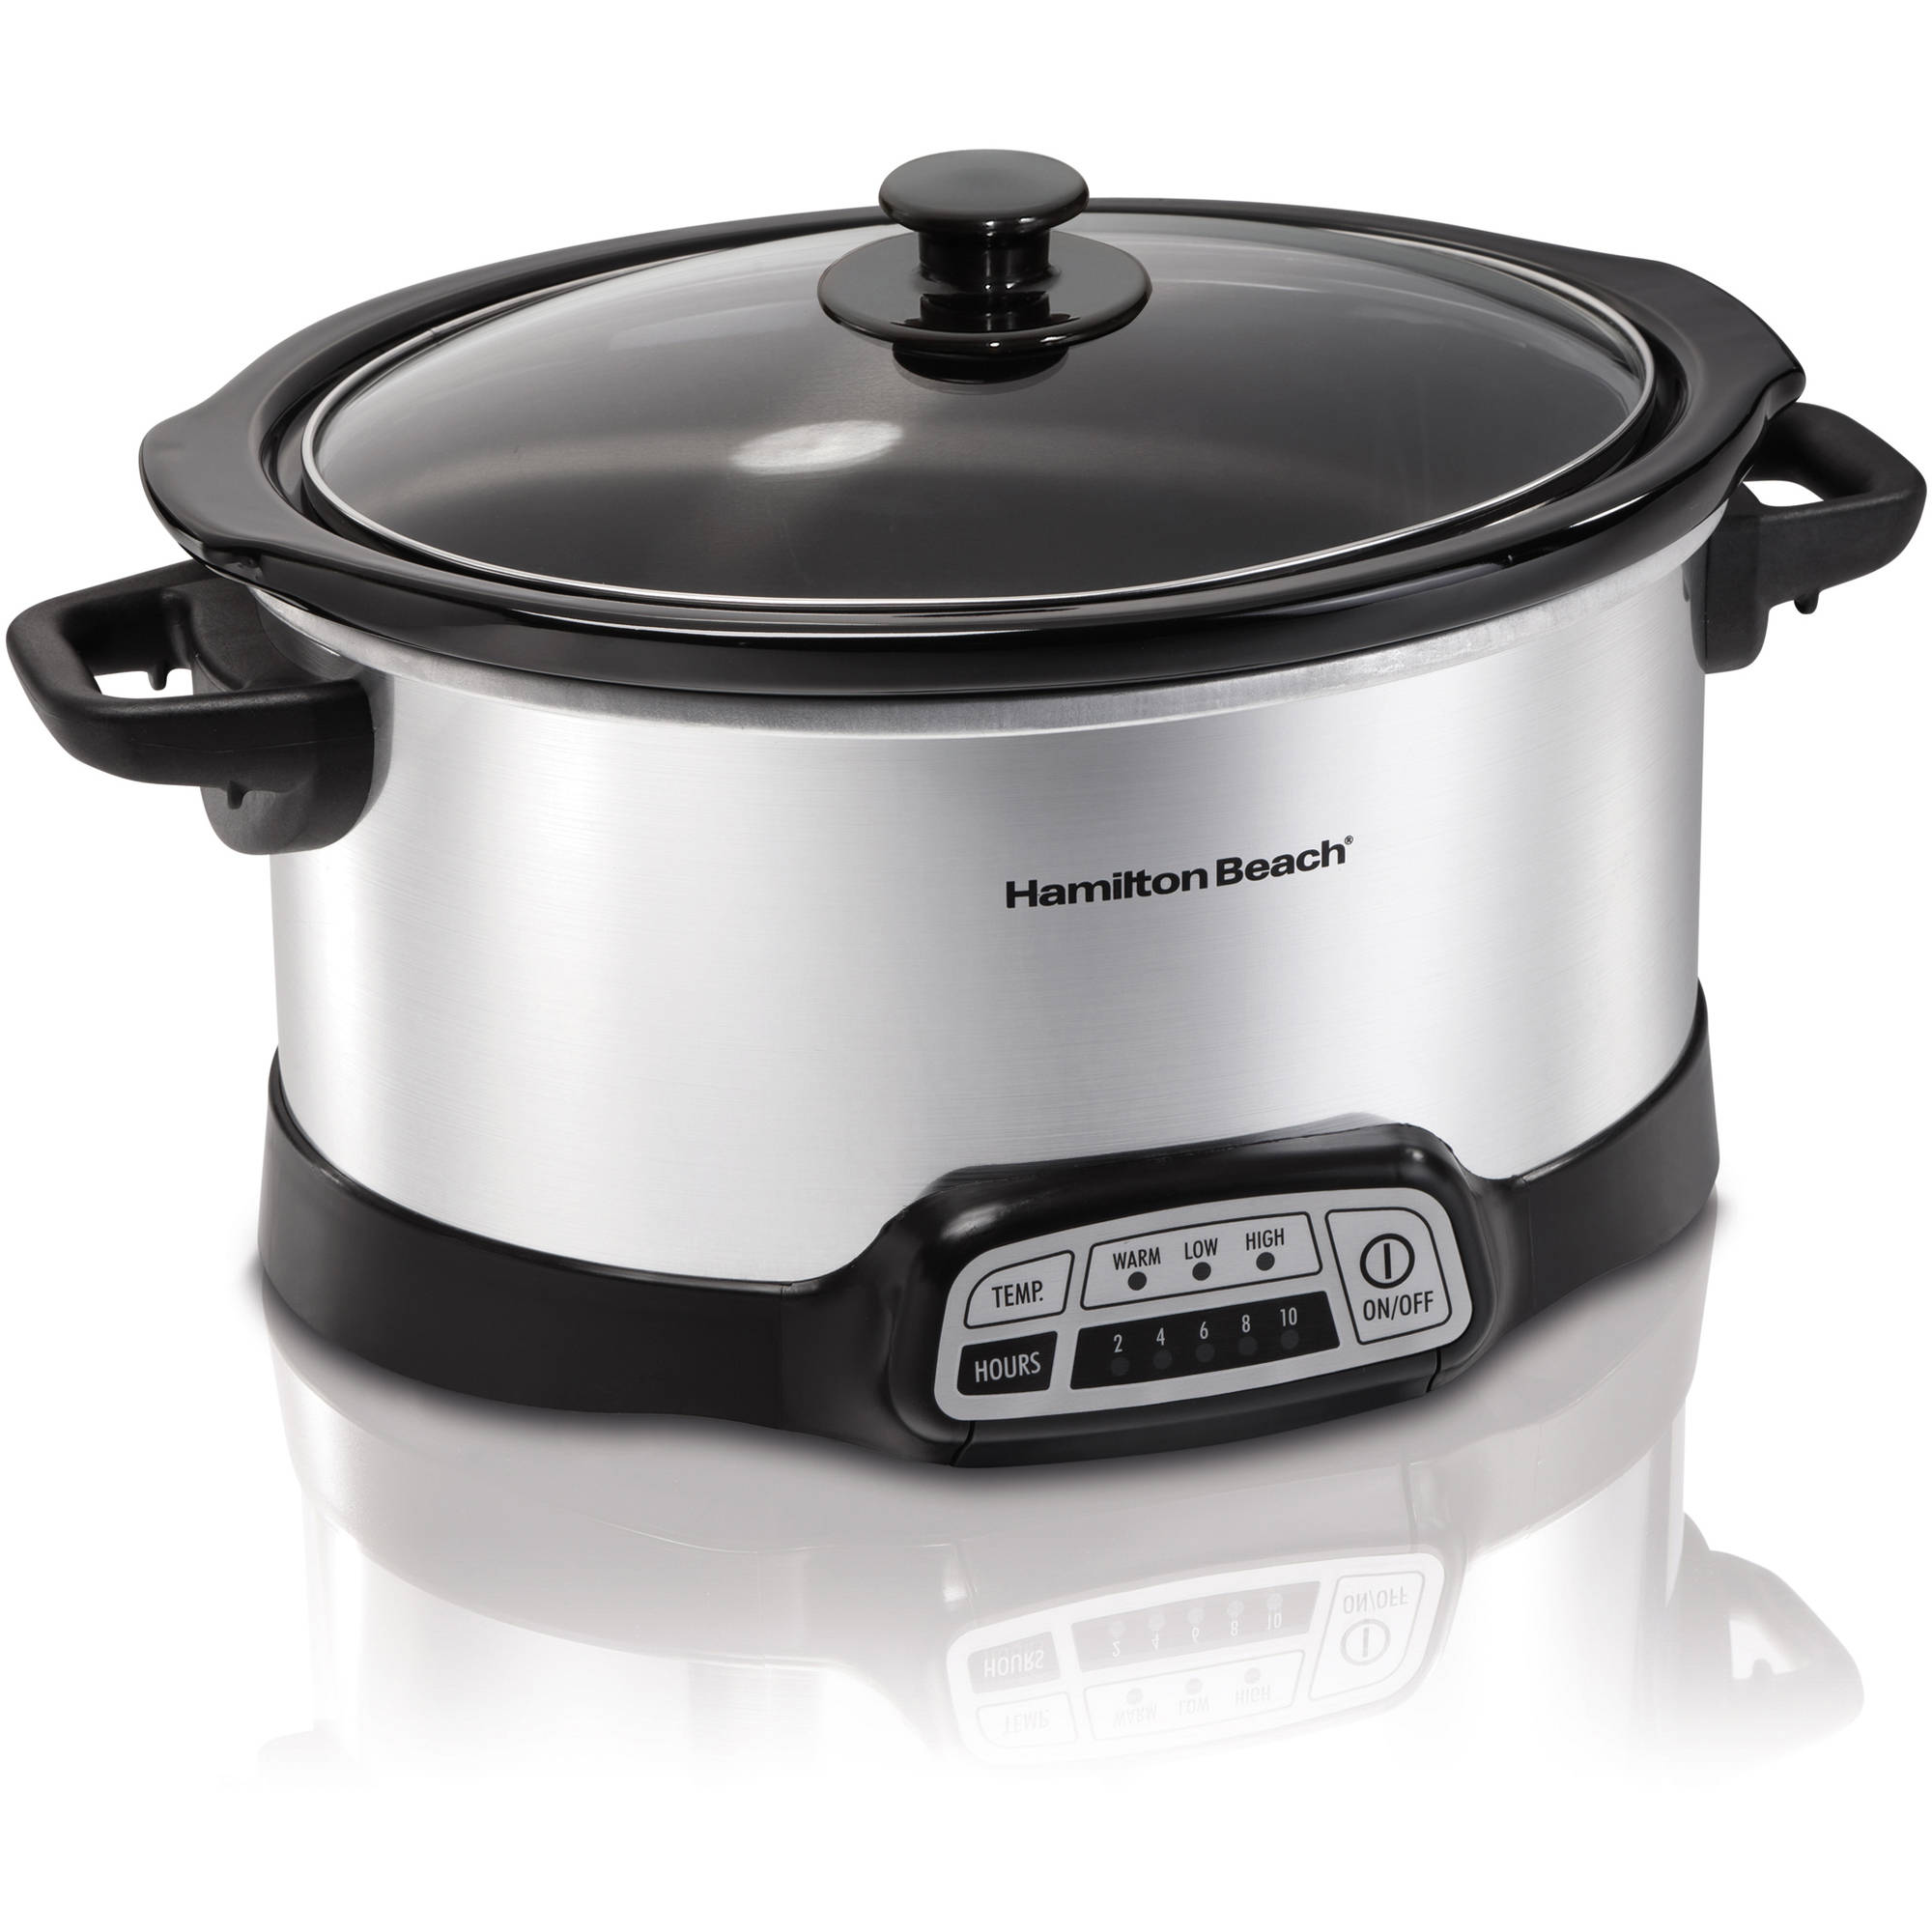 Hamilton Beach Programmable 5 Quart Slow Cooker | Model# 33453